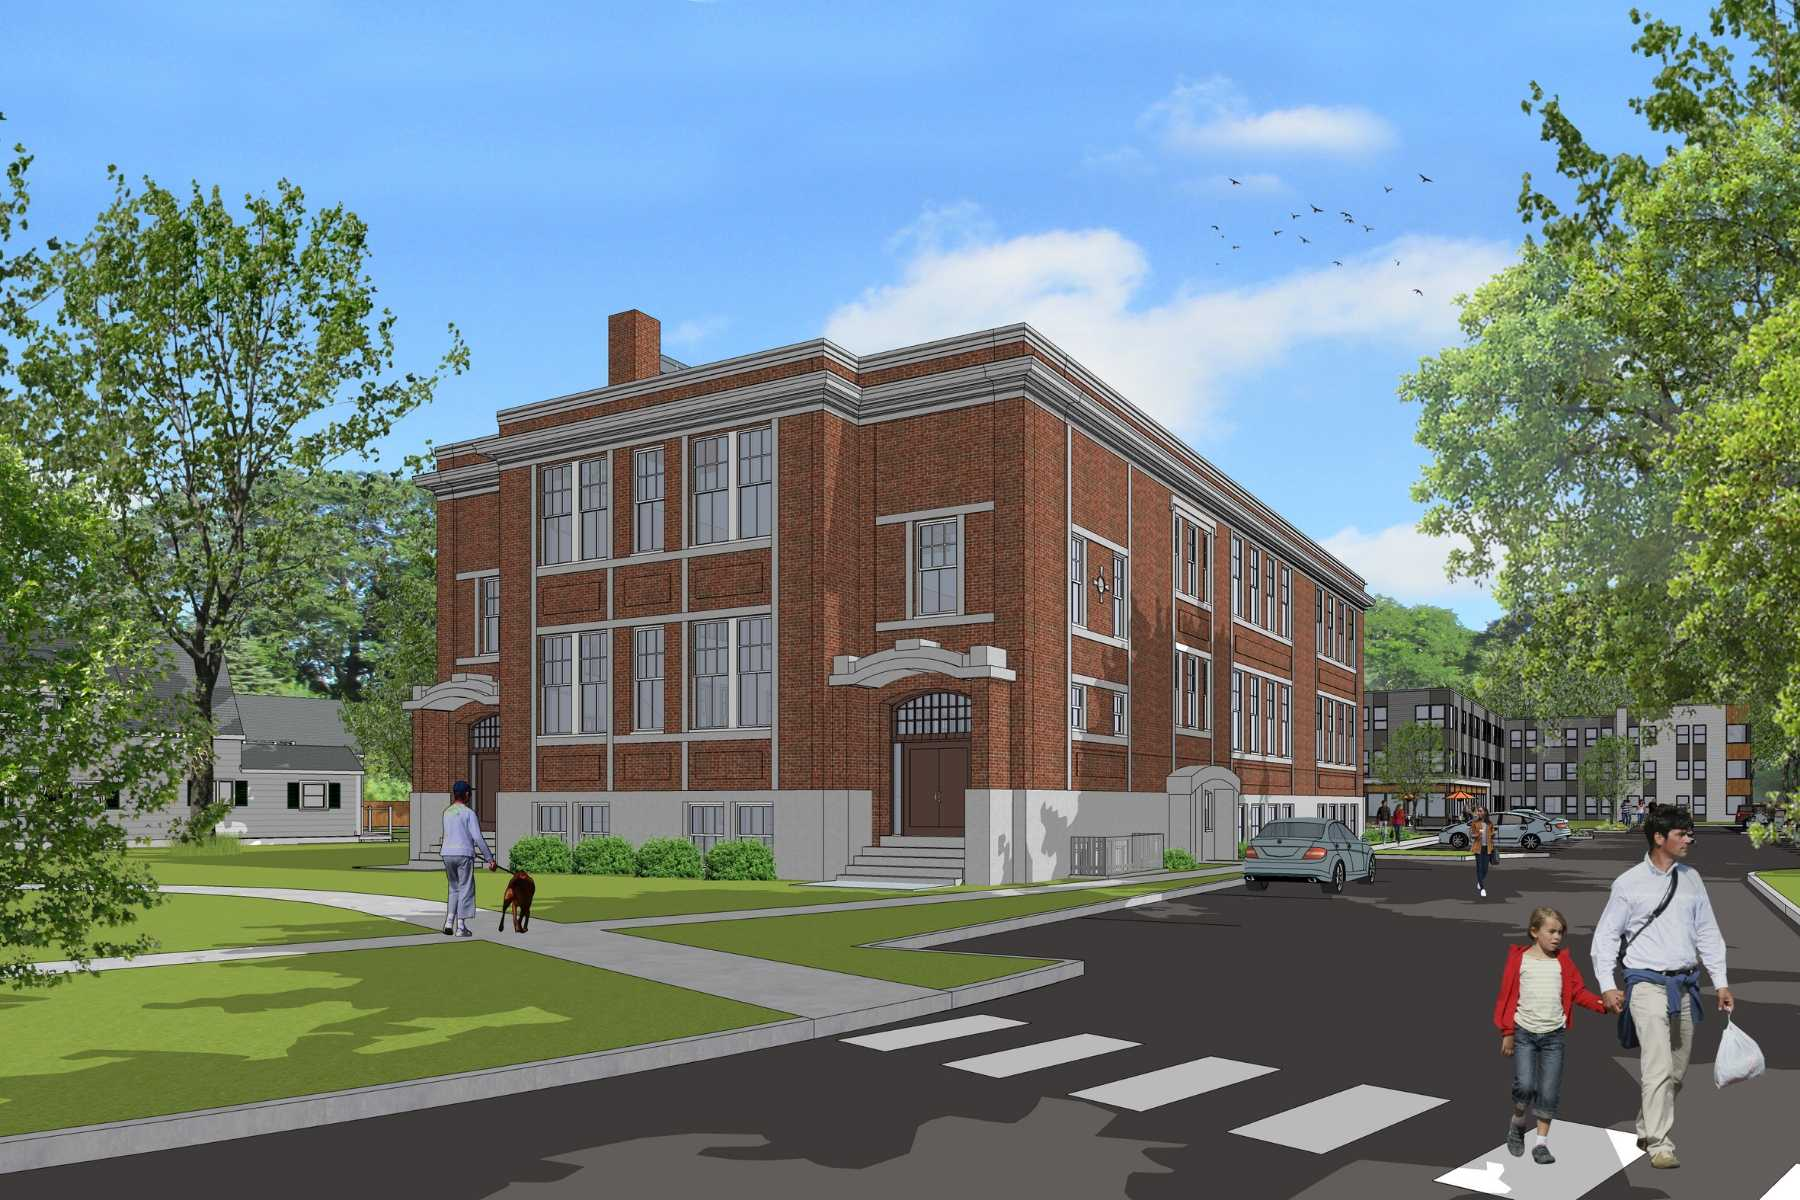 McElwain School Apartments - Proposed Mixed-Income Family Housing in Bridgewater, MA